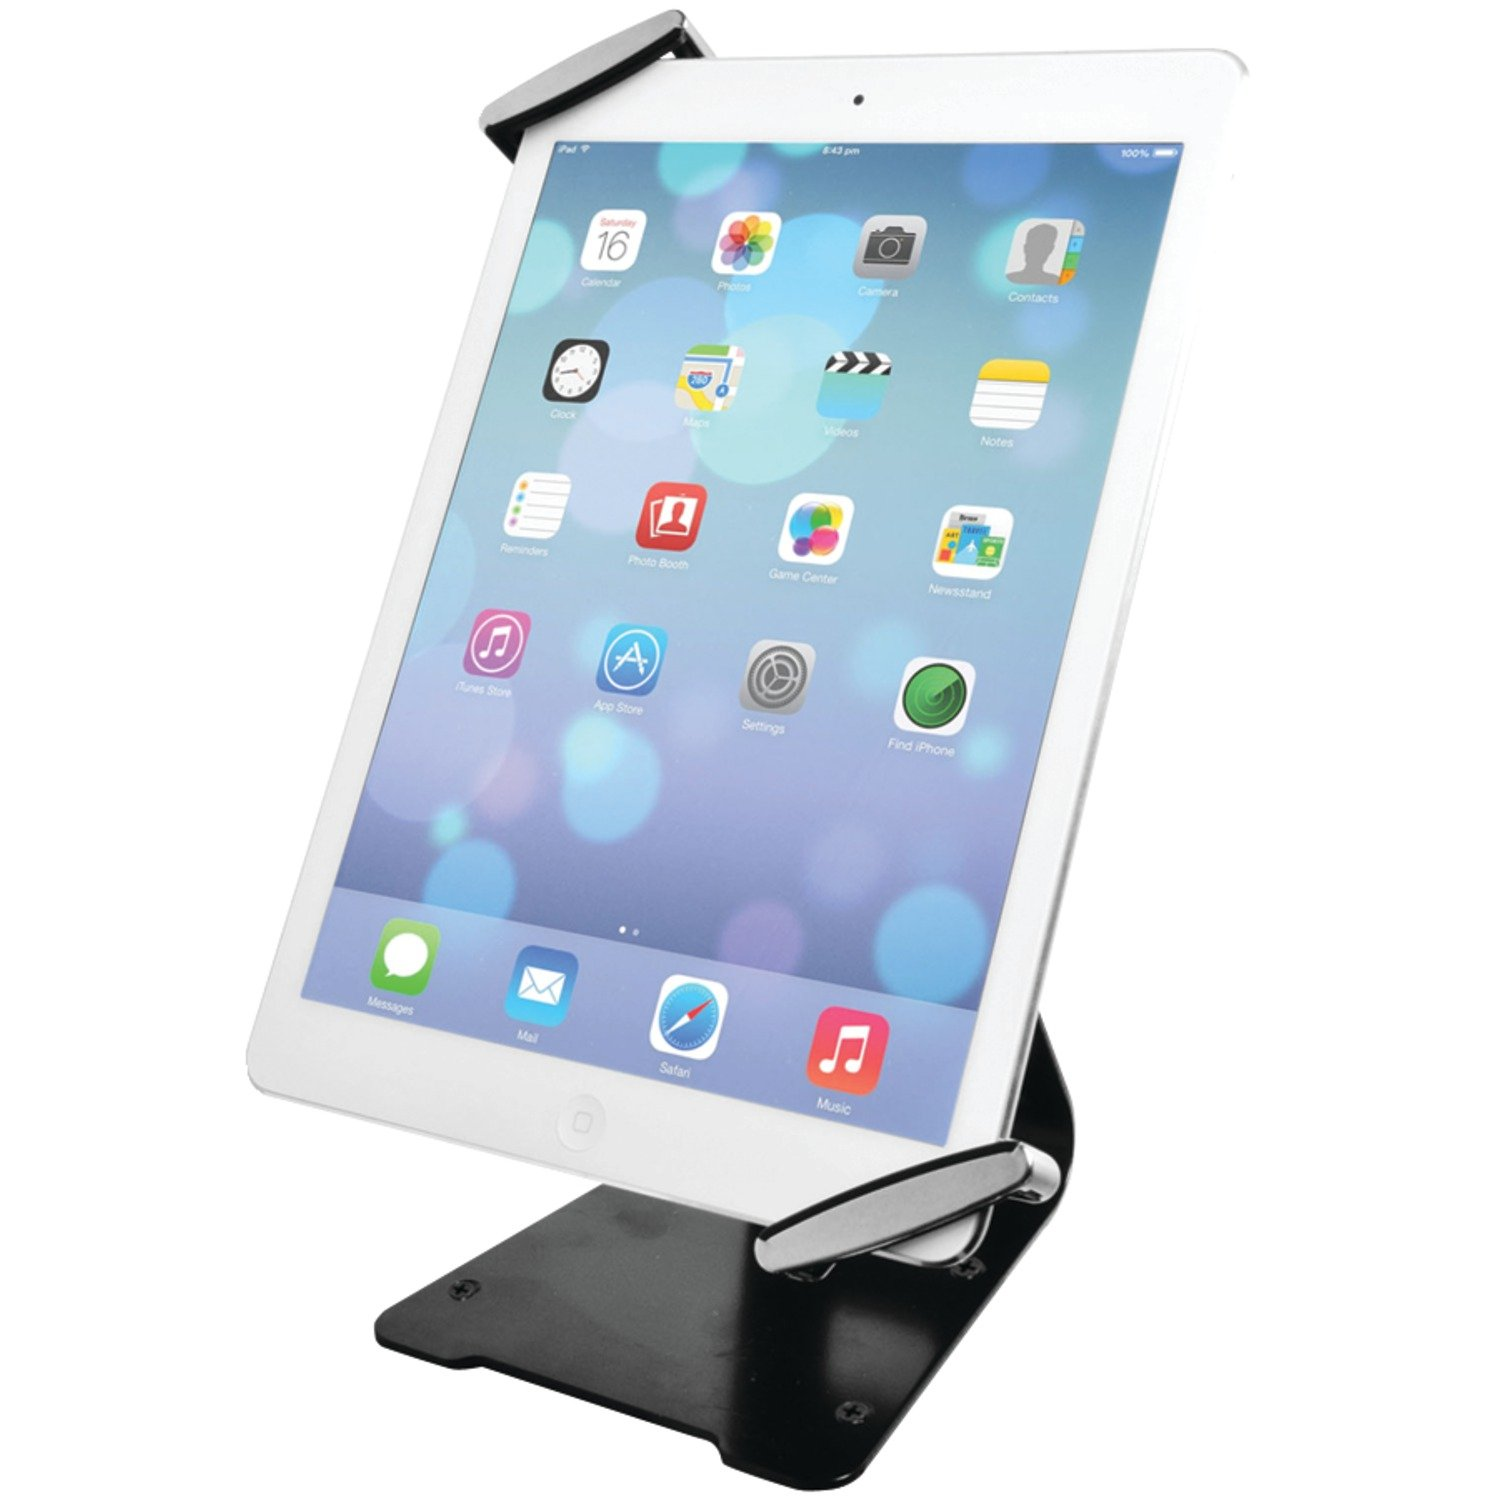 CTA Digital Universal Anti-Theft Security Grip with POS Stand for Tablets - iPad Air 2, iPad mini 4, Galaxy Tab, Note 10.1, 7–10-inch Tablets (PAD-UATGS)